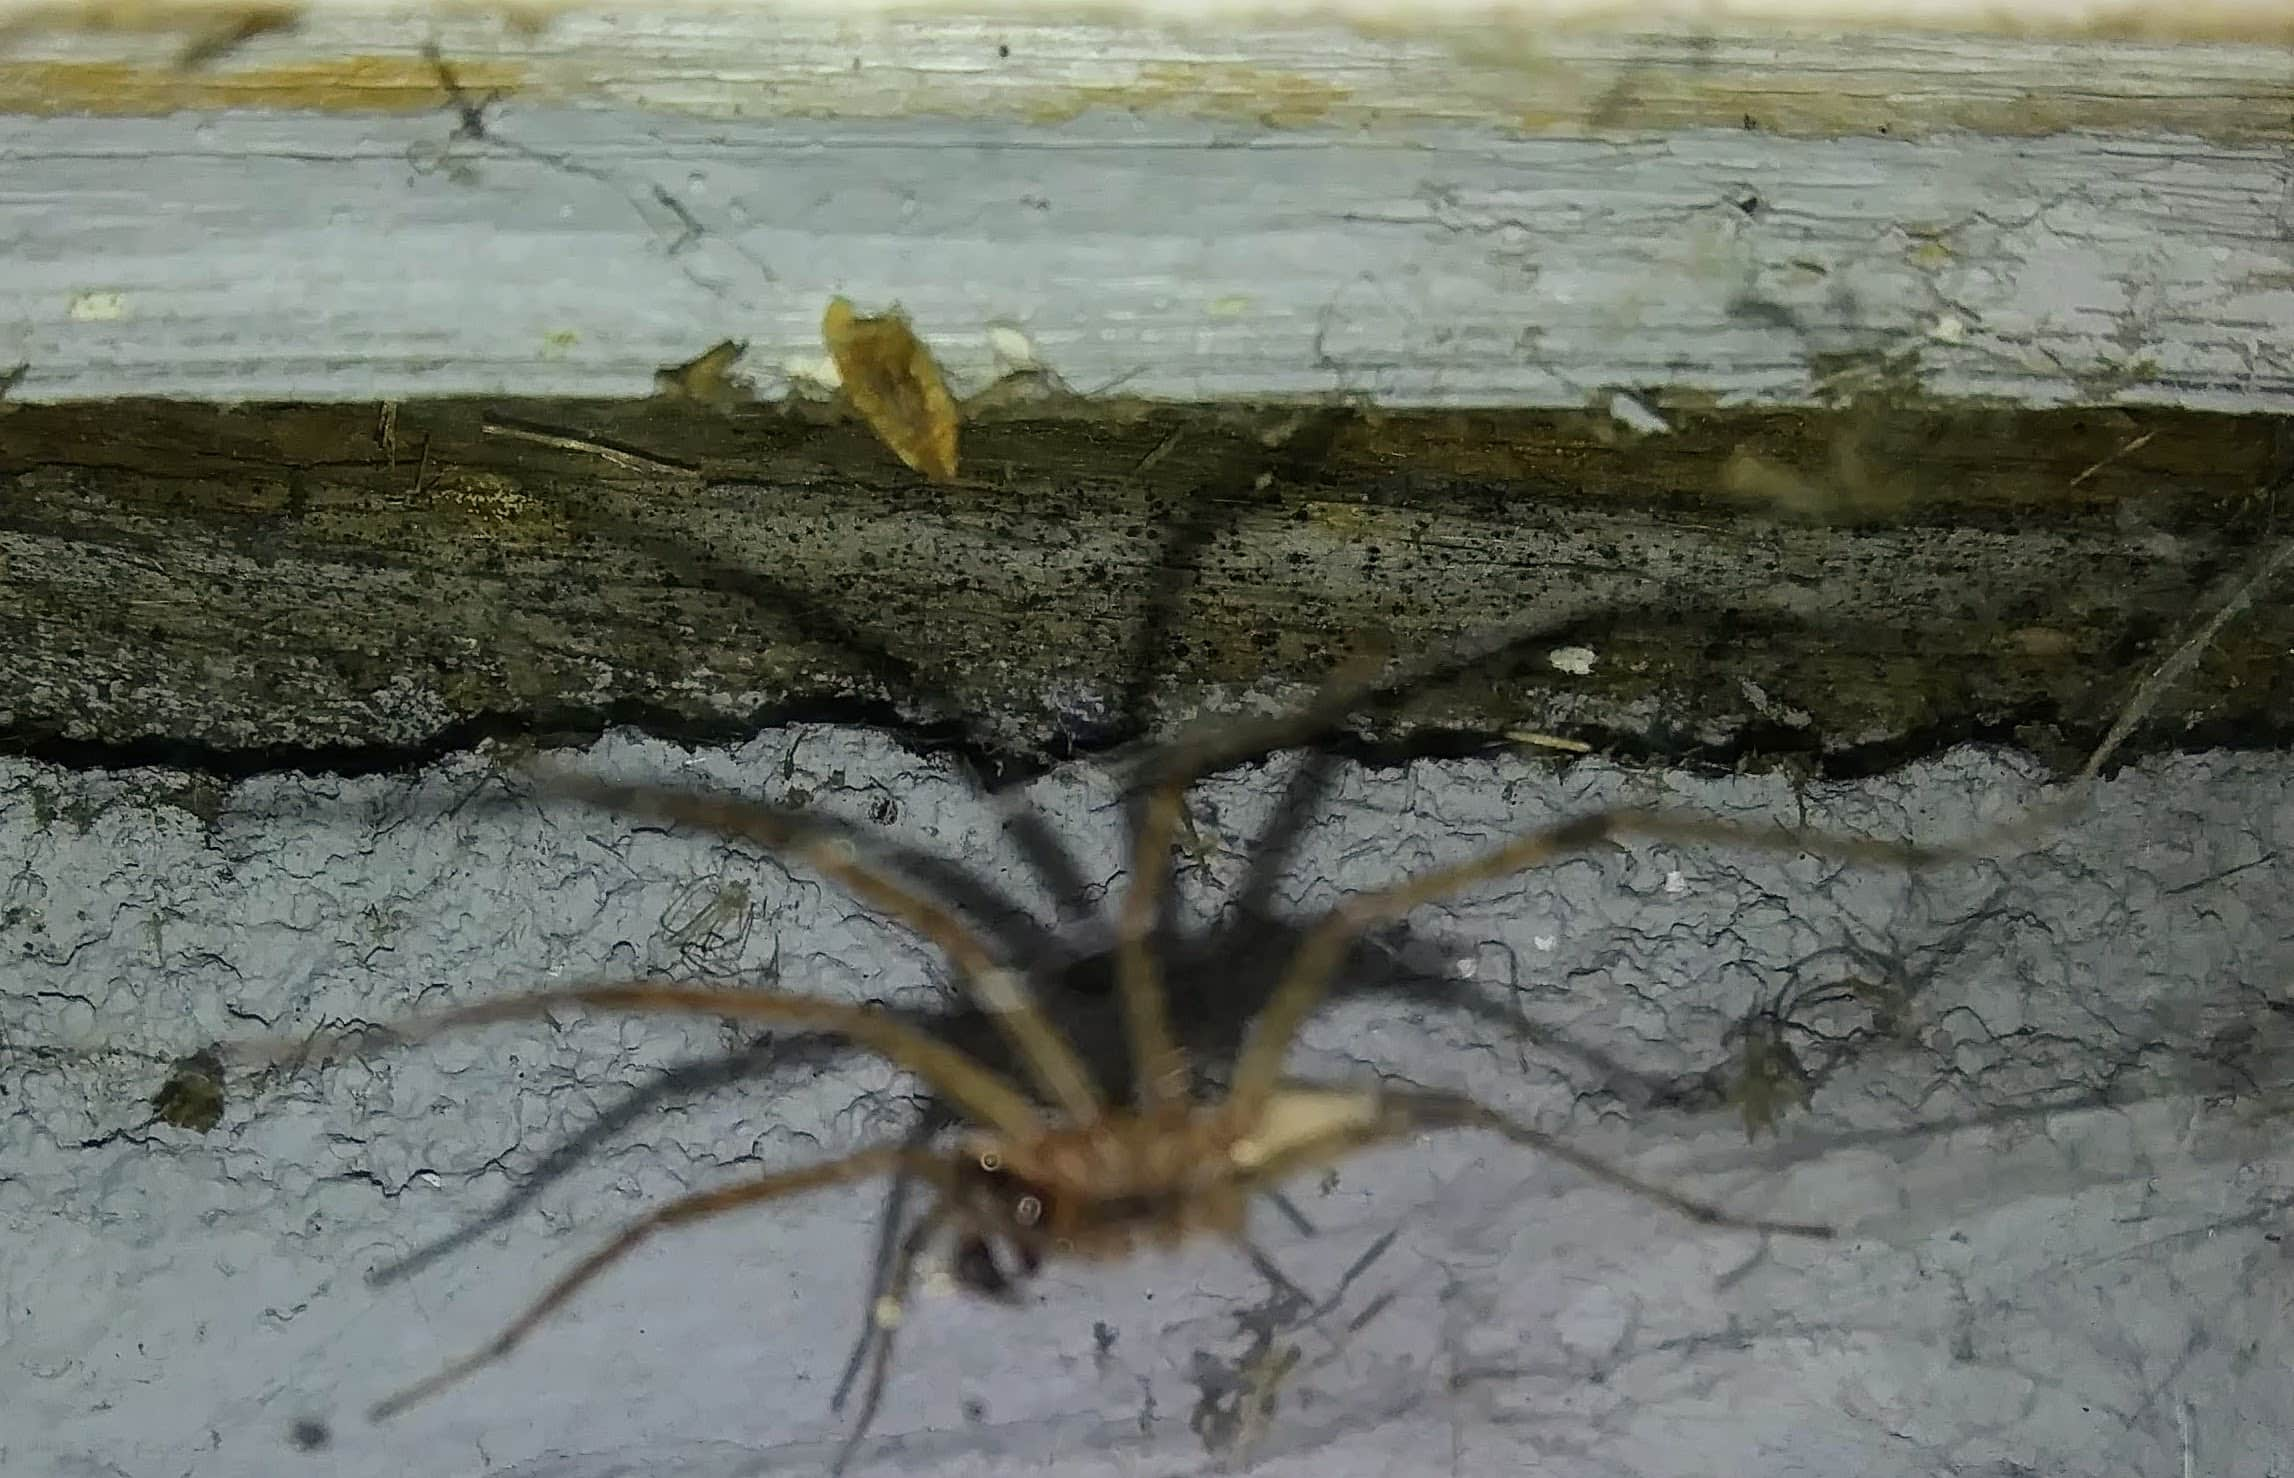 Picture of Agelenopsis (Grass Spiders) - Male - Lateral